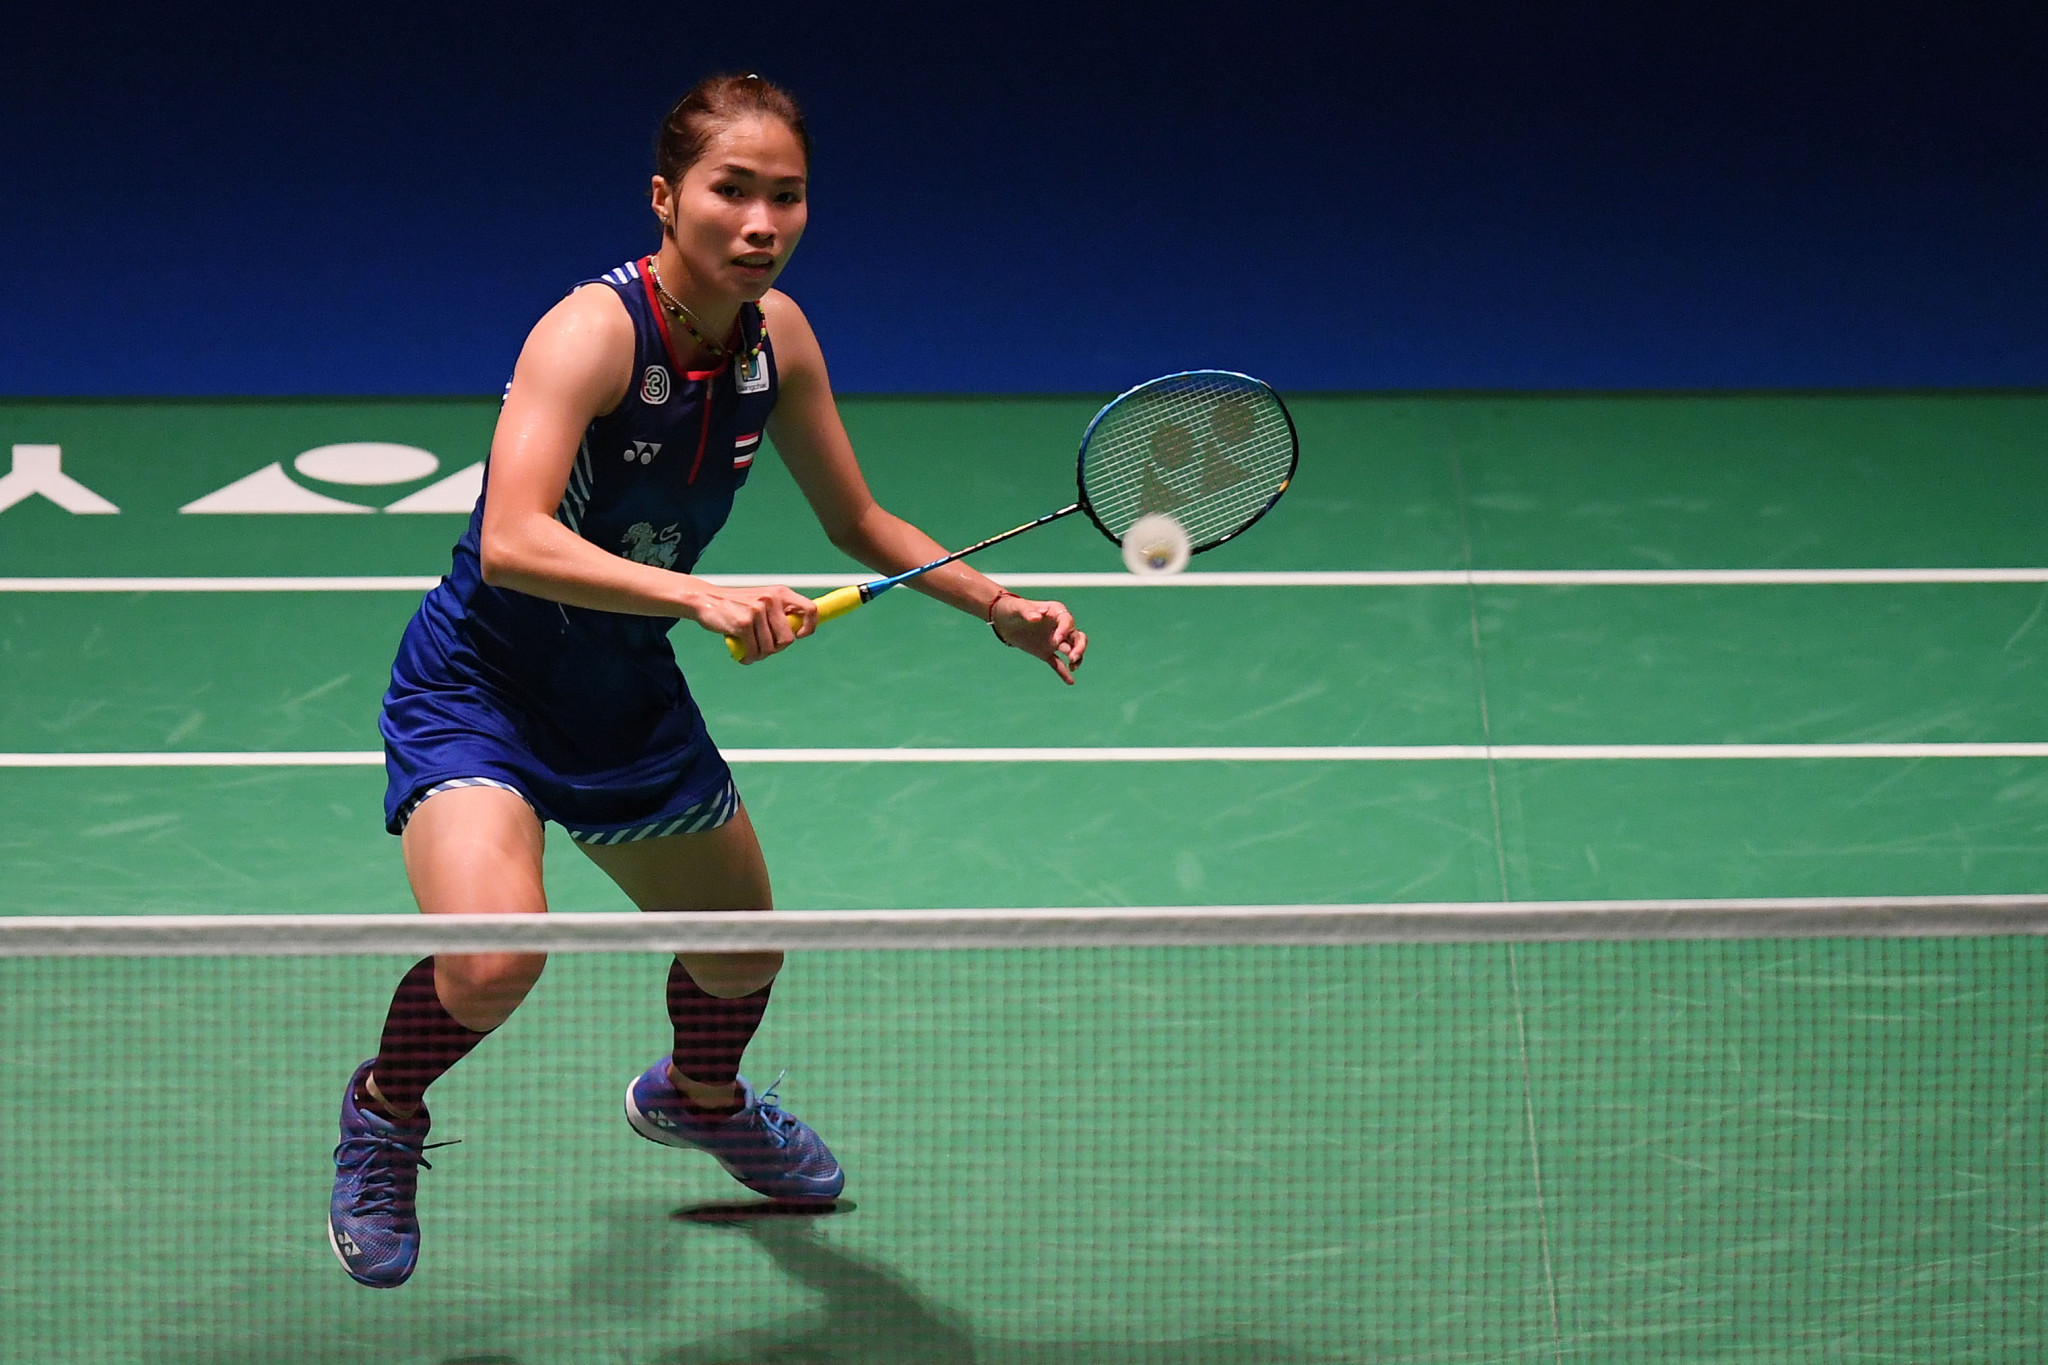 Thailand's defending champion Ratchanok Intanon was eliminated from the women's singles event ©Getty Images